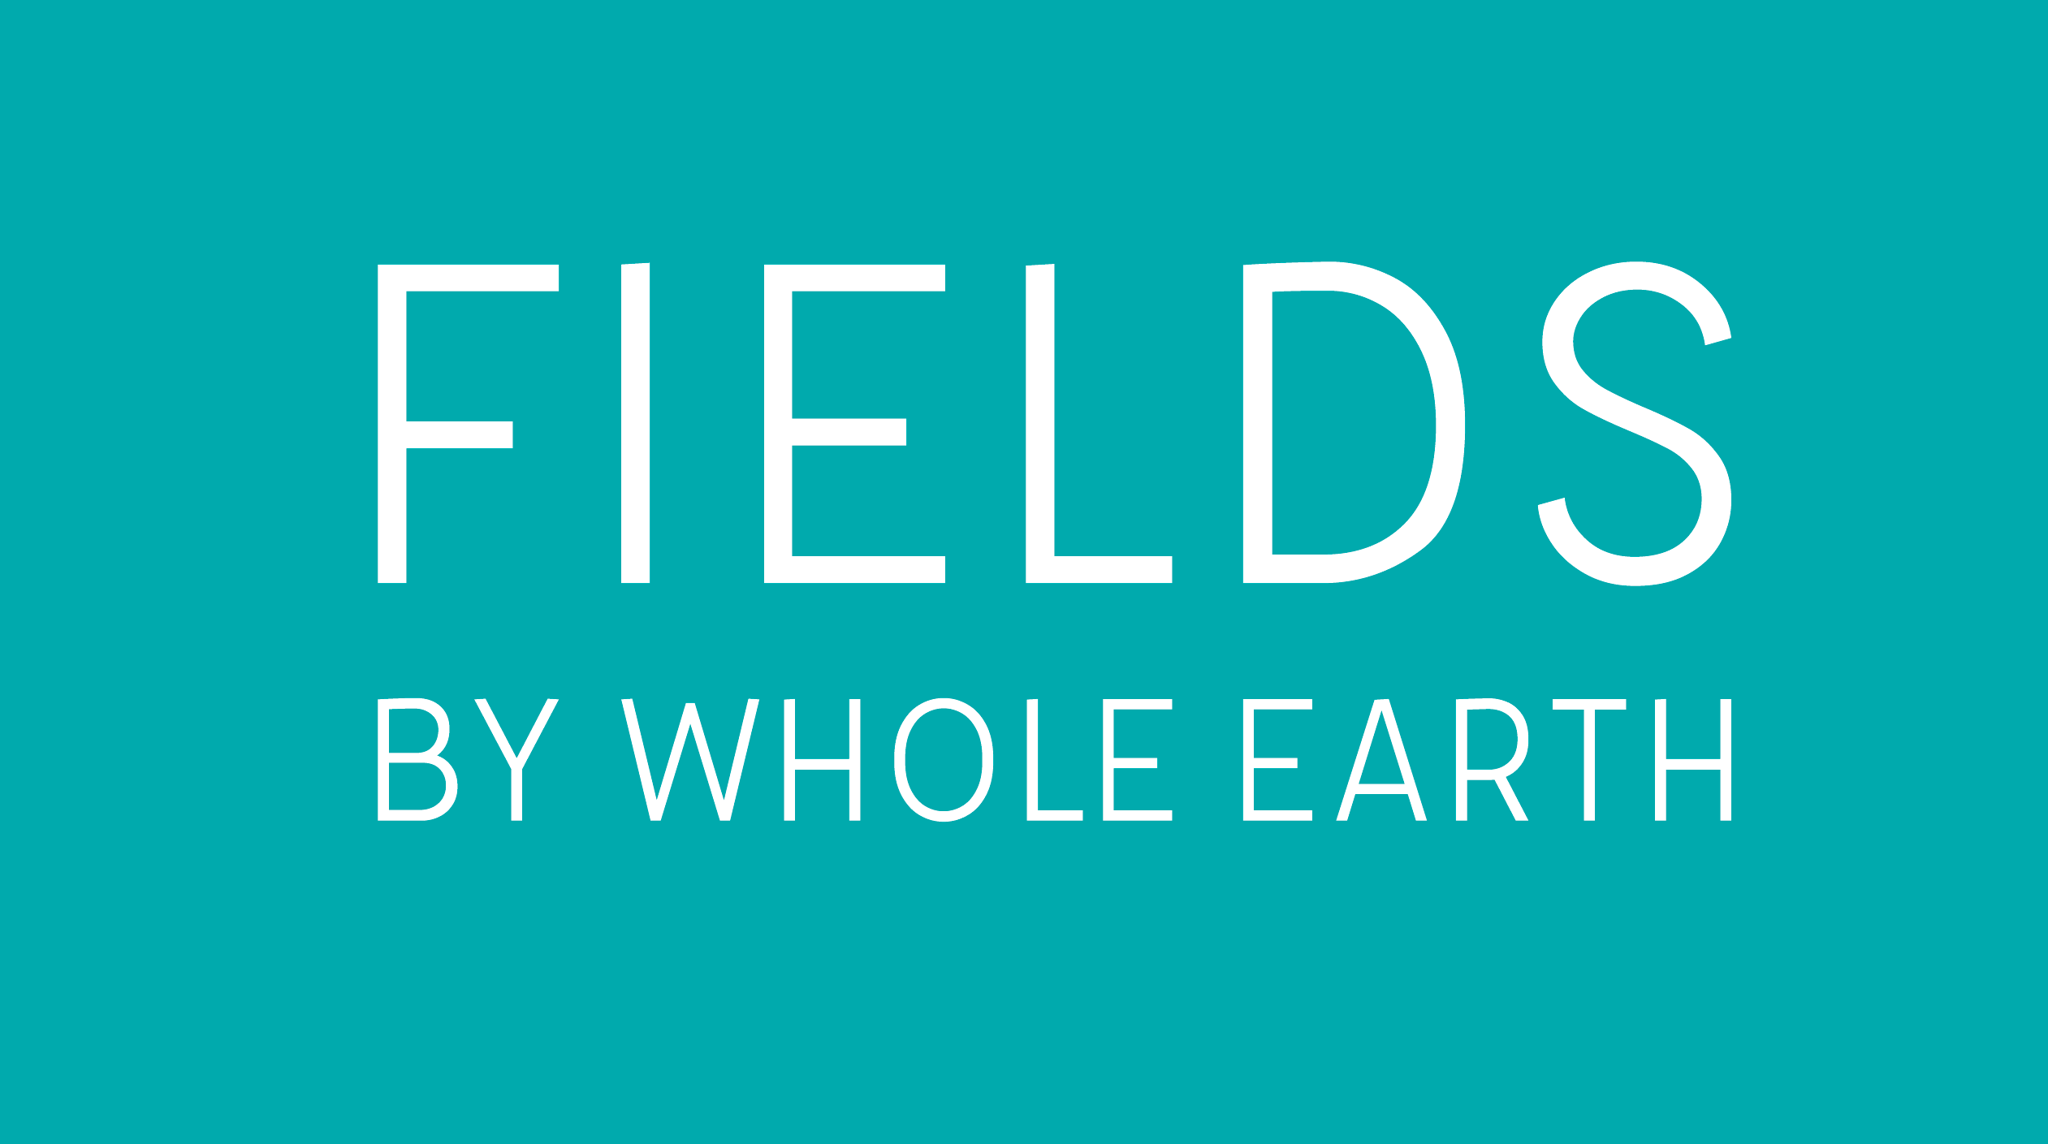 FIELDS by Whole Earth